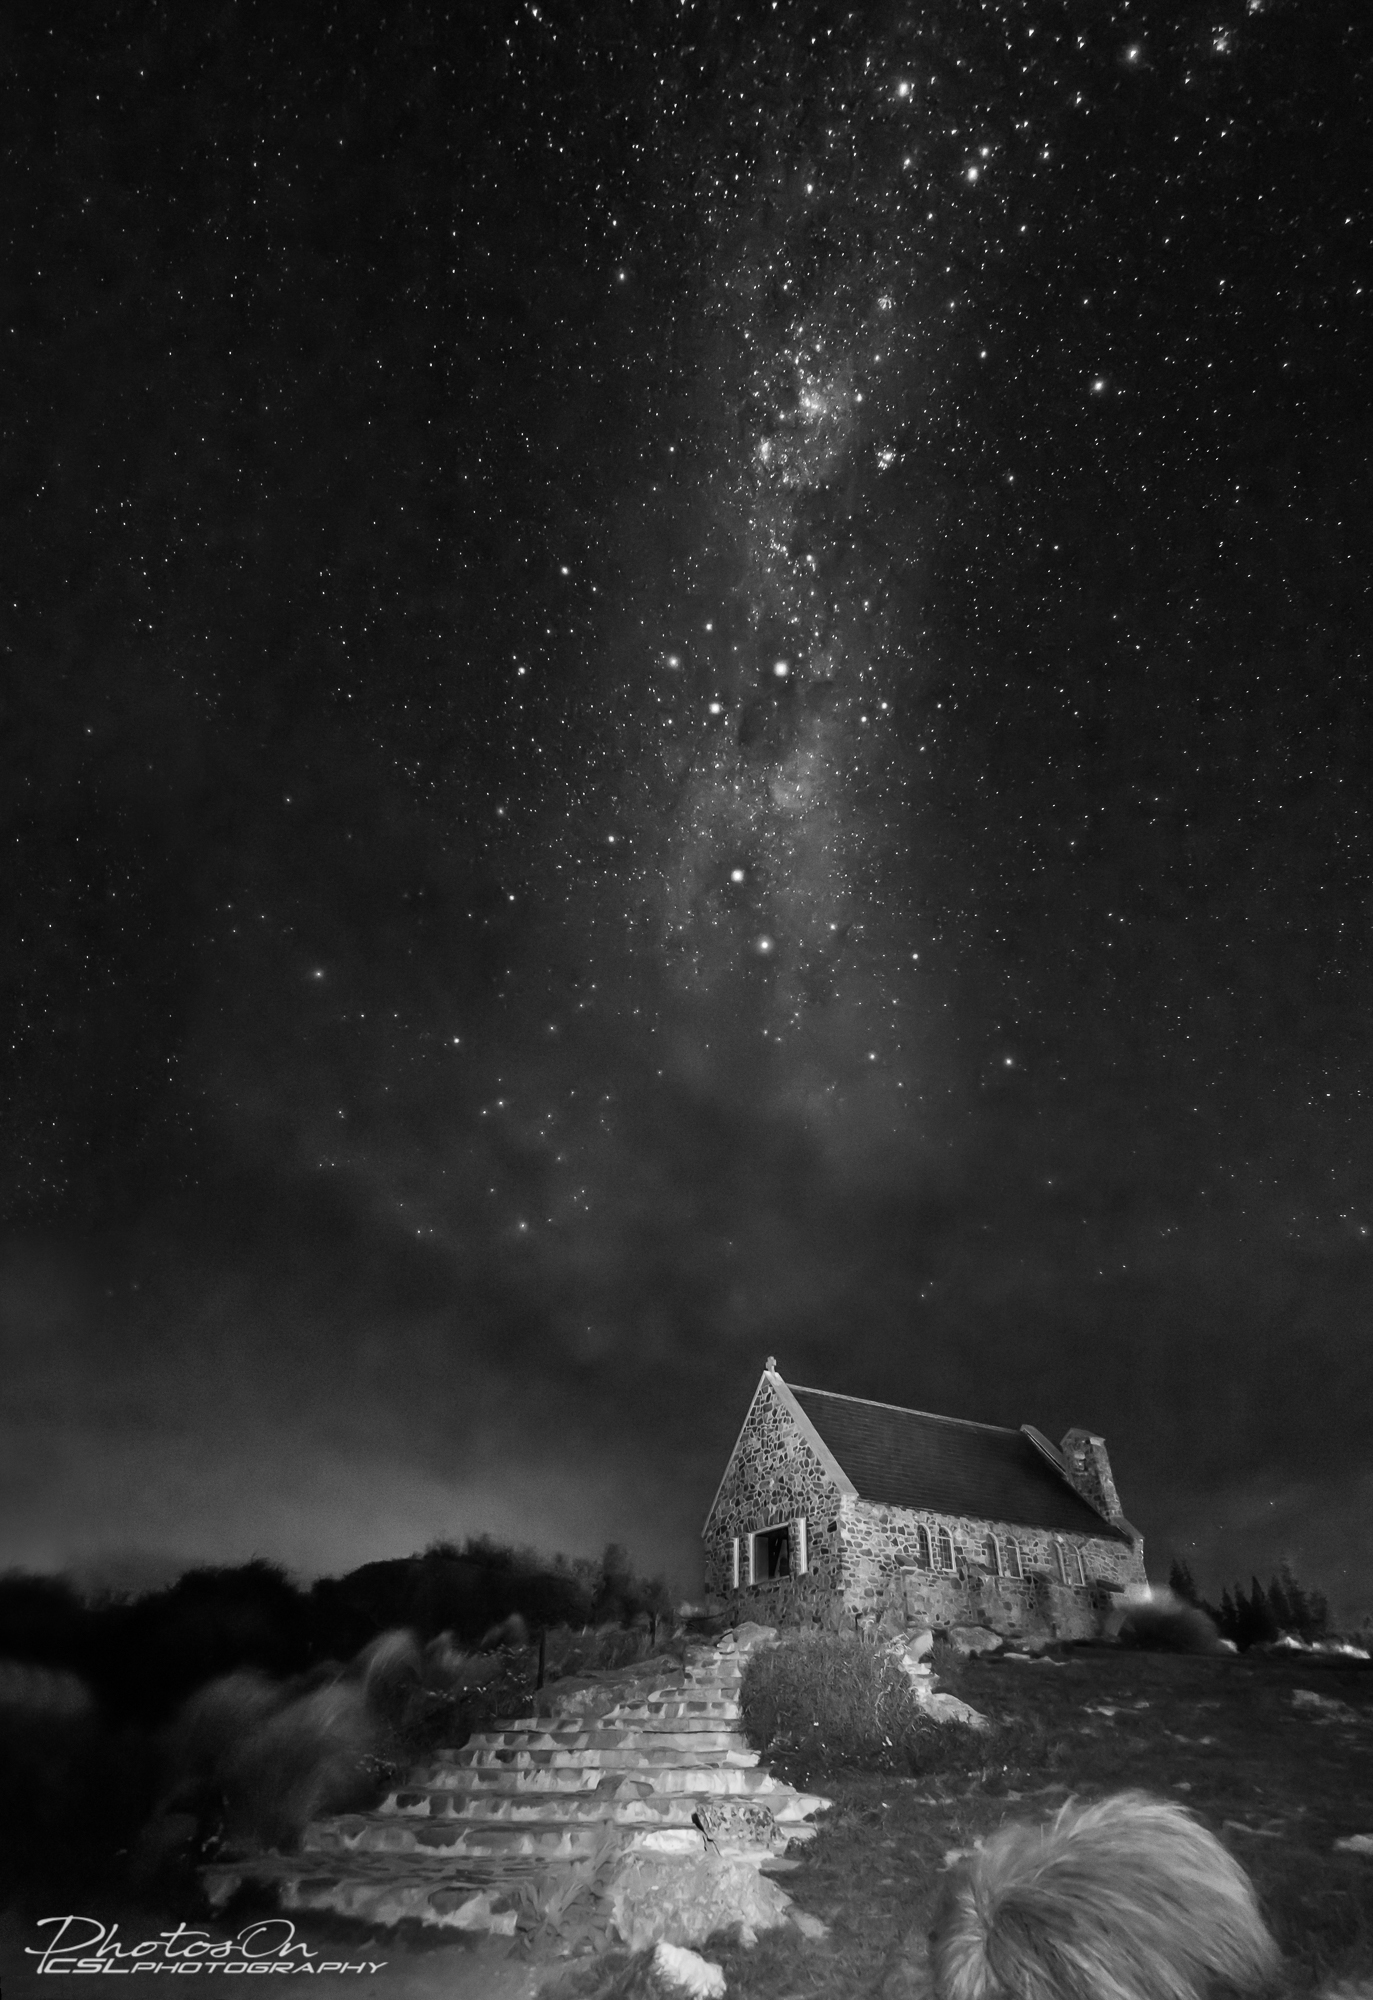 pon-2000_csl4540-laketekapo-goodshepherdchurch-night2ff.jpg